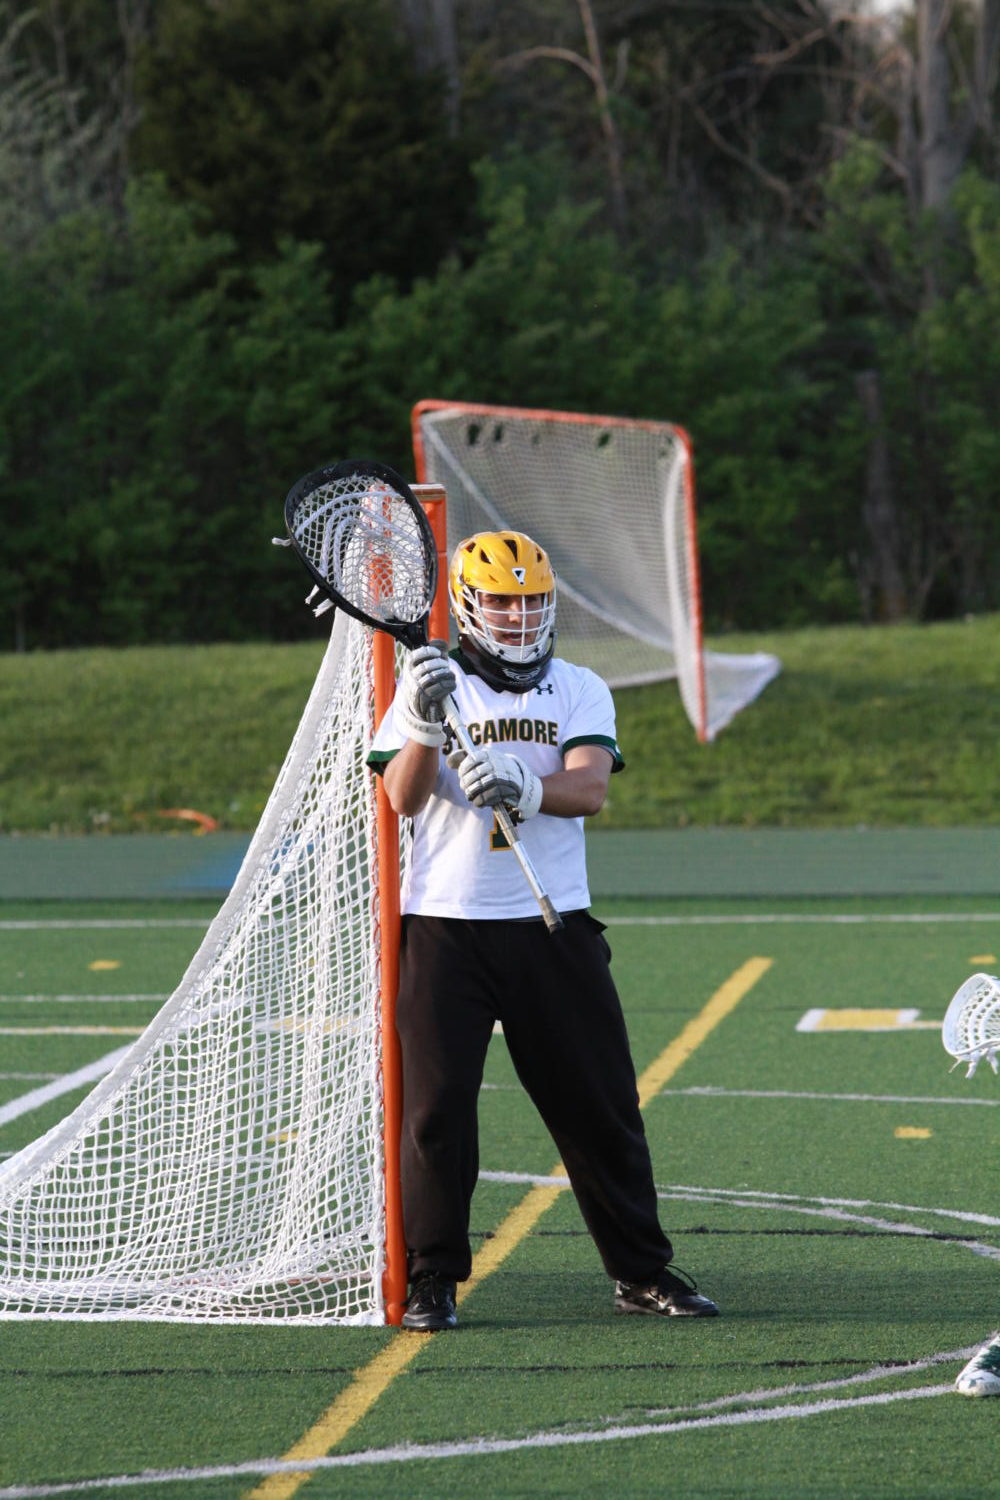 SAVE. Evan Schuster, 12, is the goalie for the Varsity boys' Lacrosse team. He has recently committed to Indiana Tech for lacrosse. He is also the second all-time goalie for career saves.